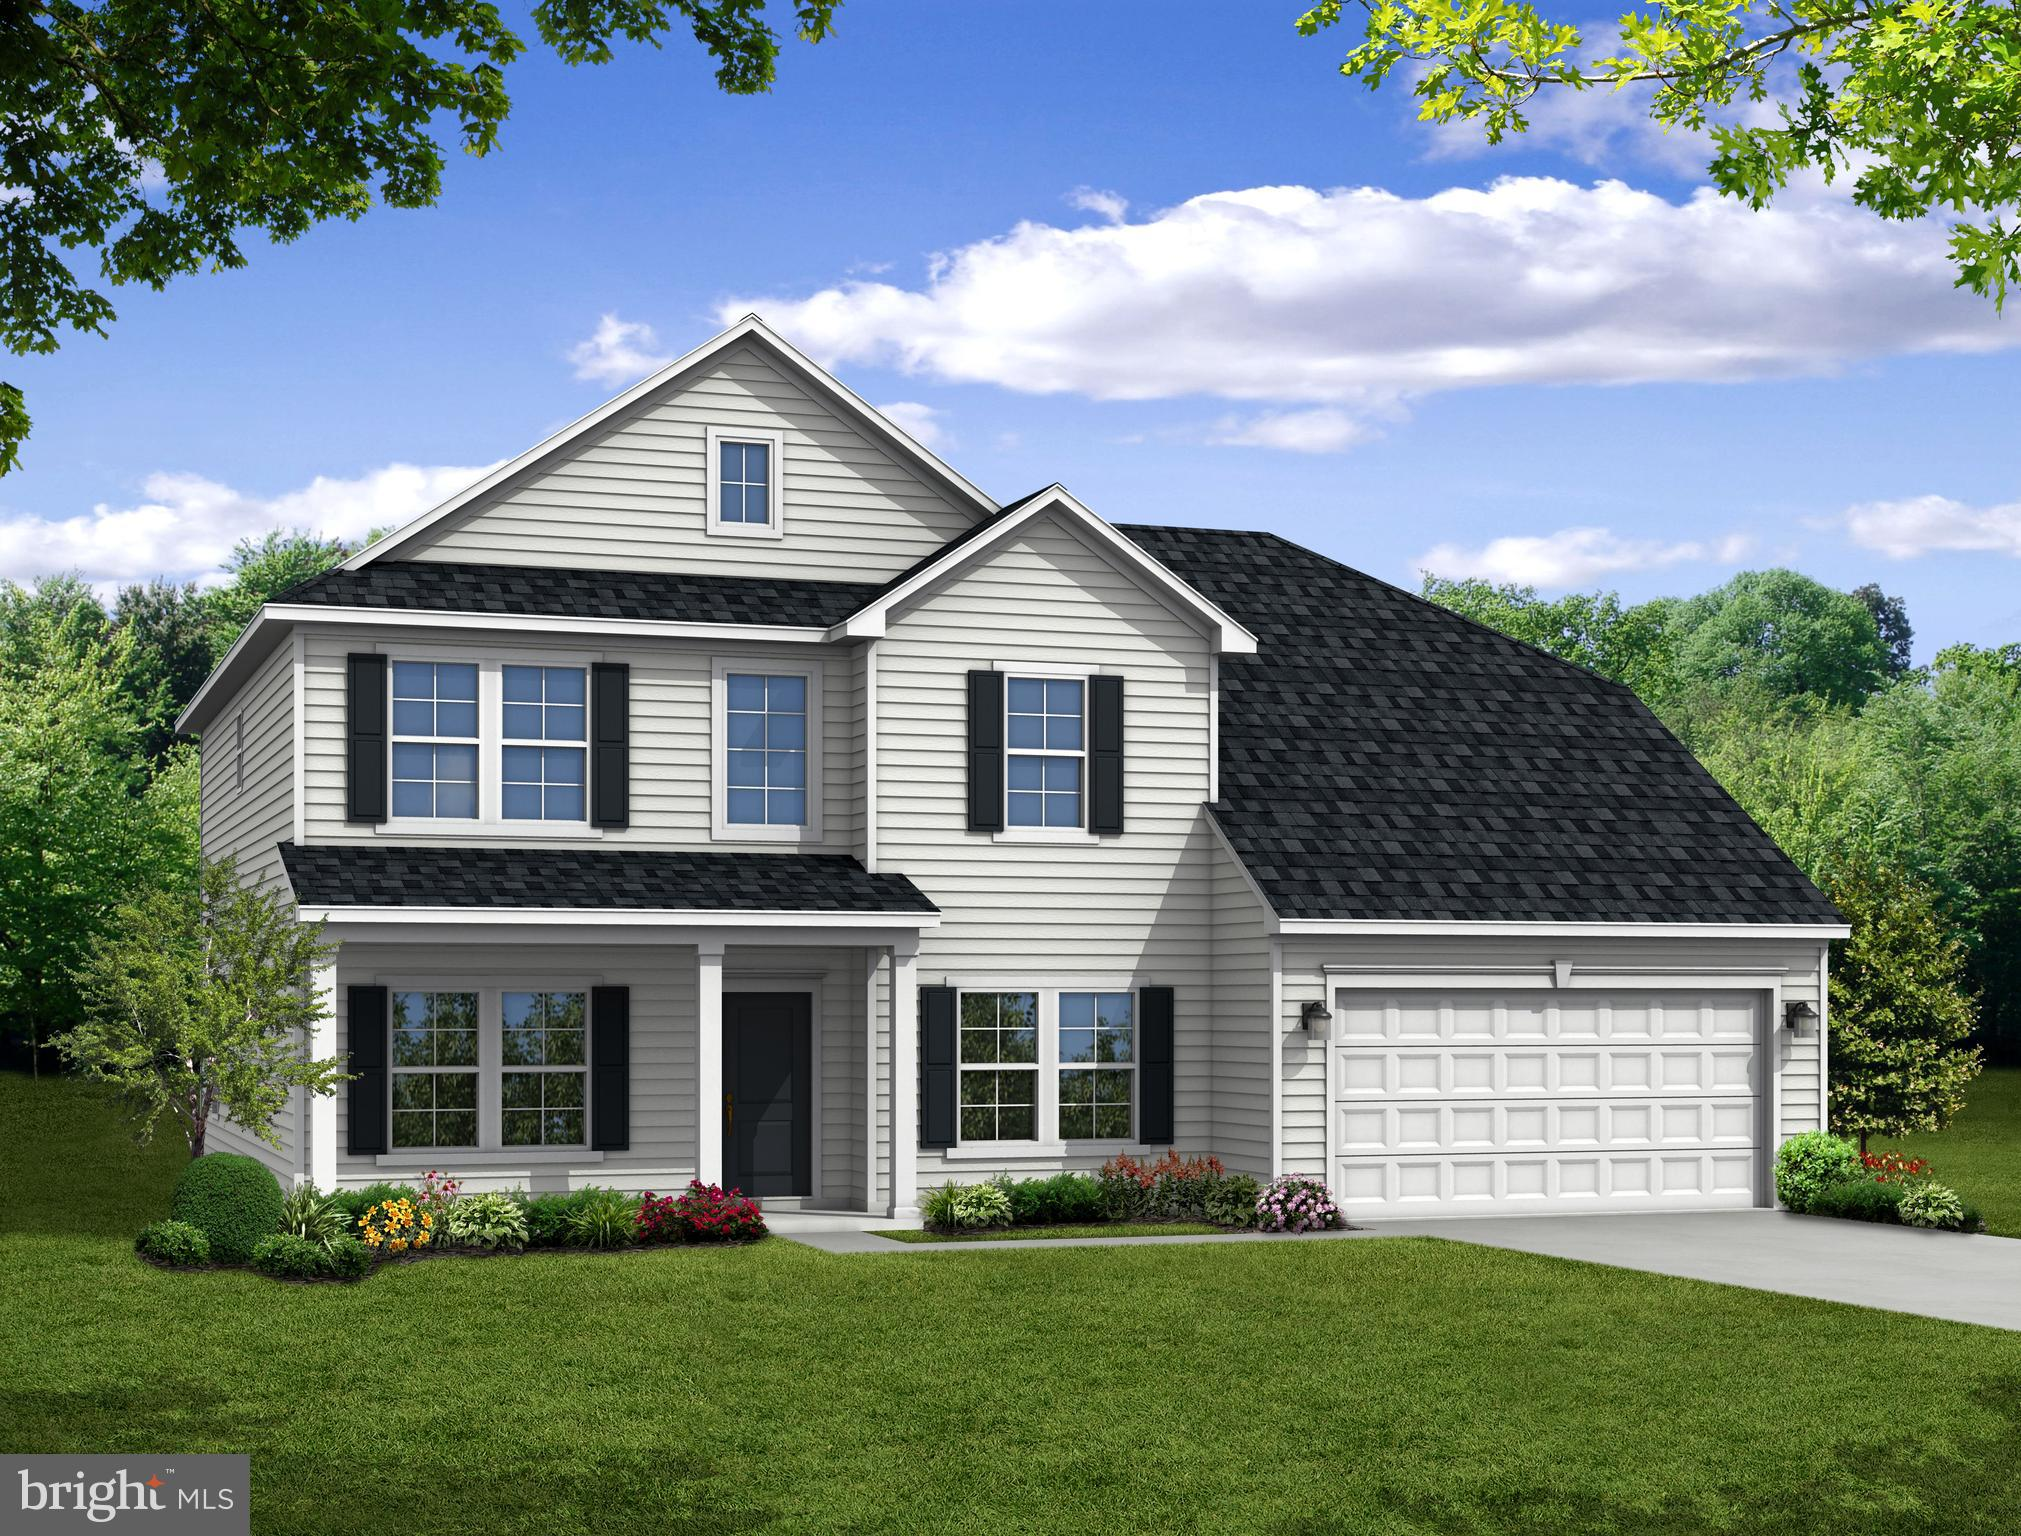 Our Virginian Model is ready for new home owners. This 4 bedroom home features oak railings , recessed lights and a spacious kitchen. Pictures are for representation purposes only and not of actual model.